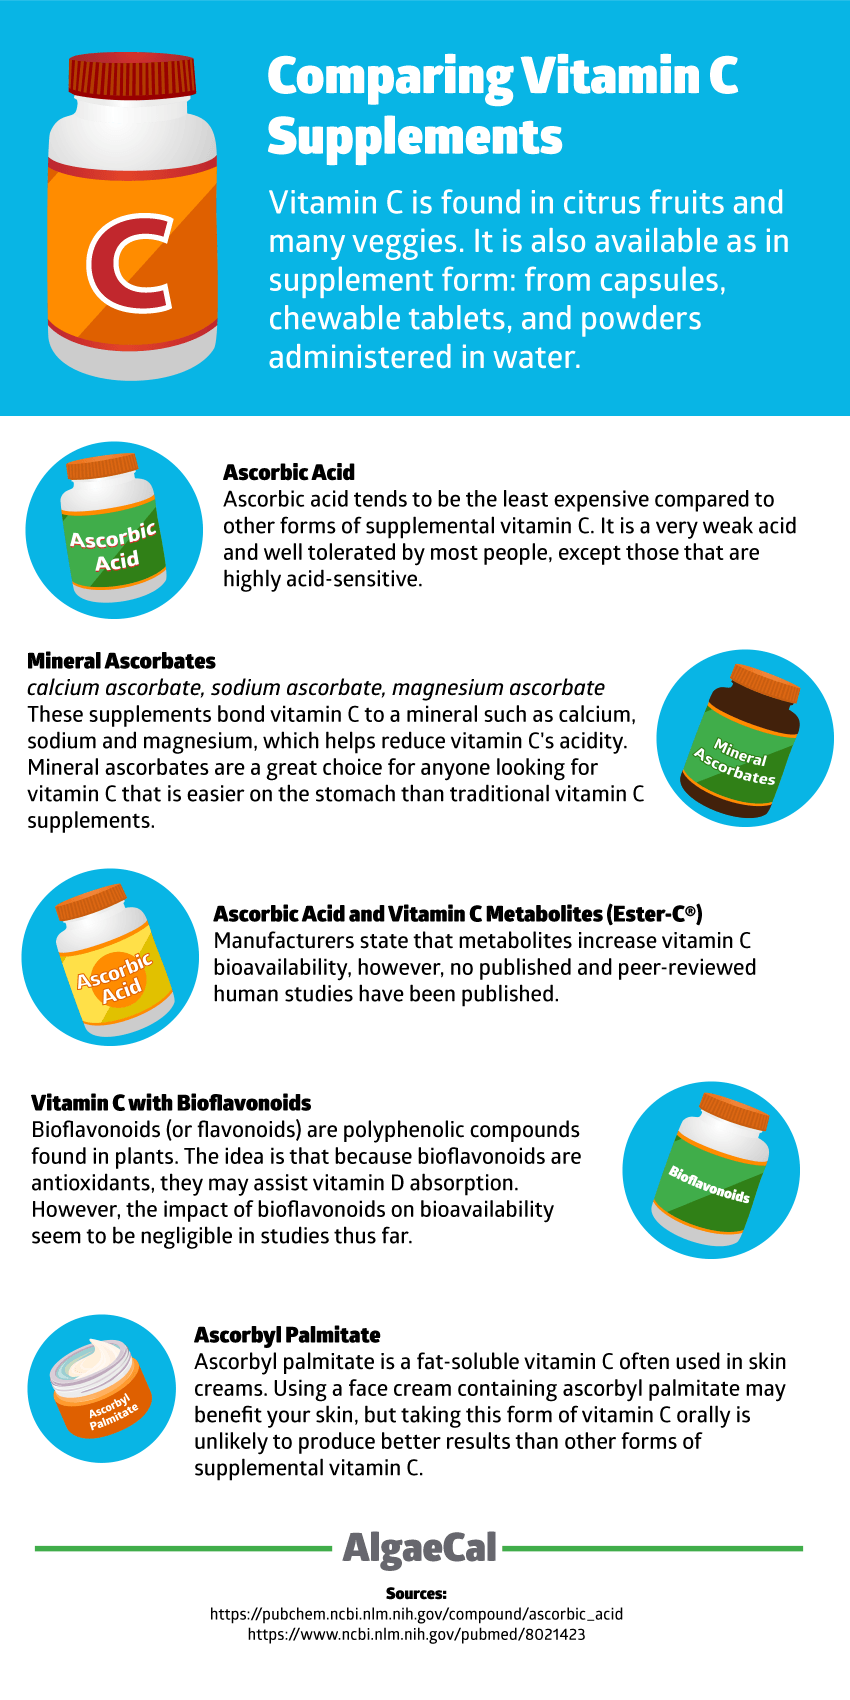 Comparing Vitamin C Supplements